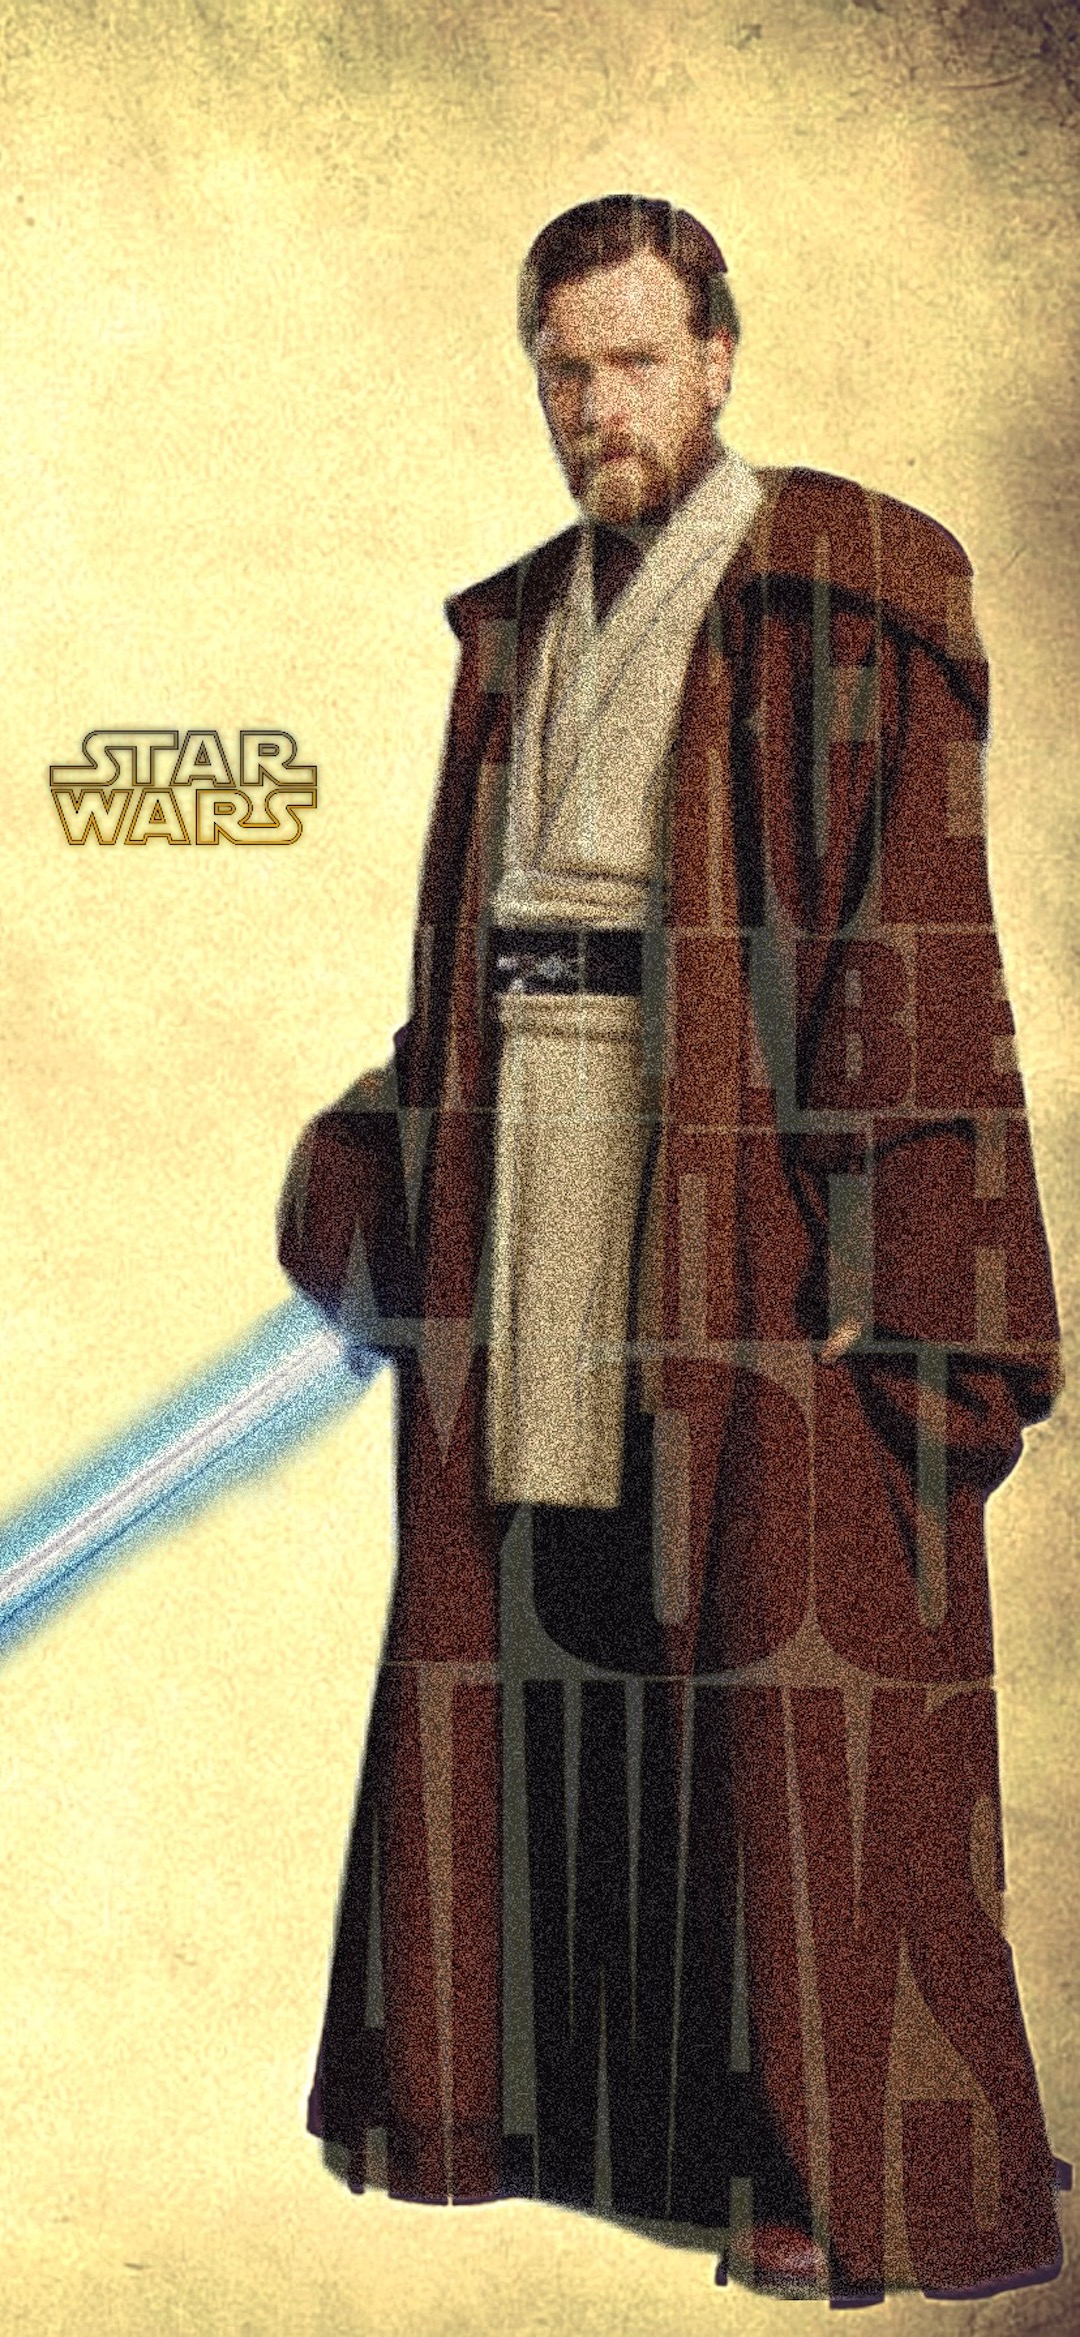 obi wan star wars iphone X wallpaper by iamjoeya